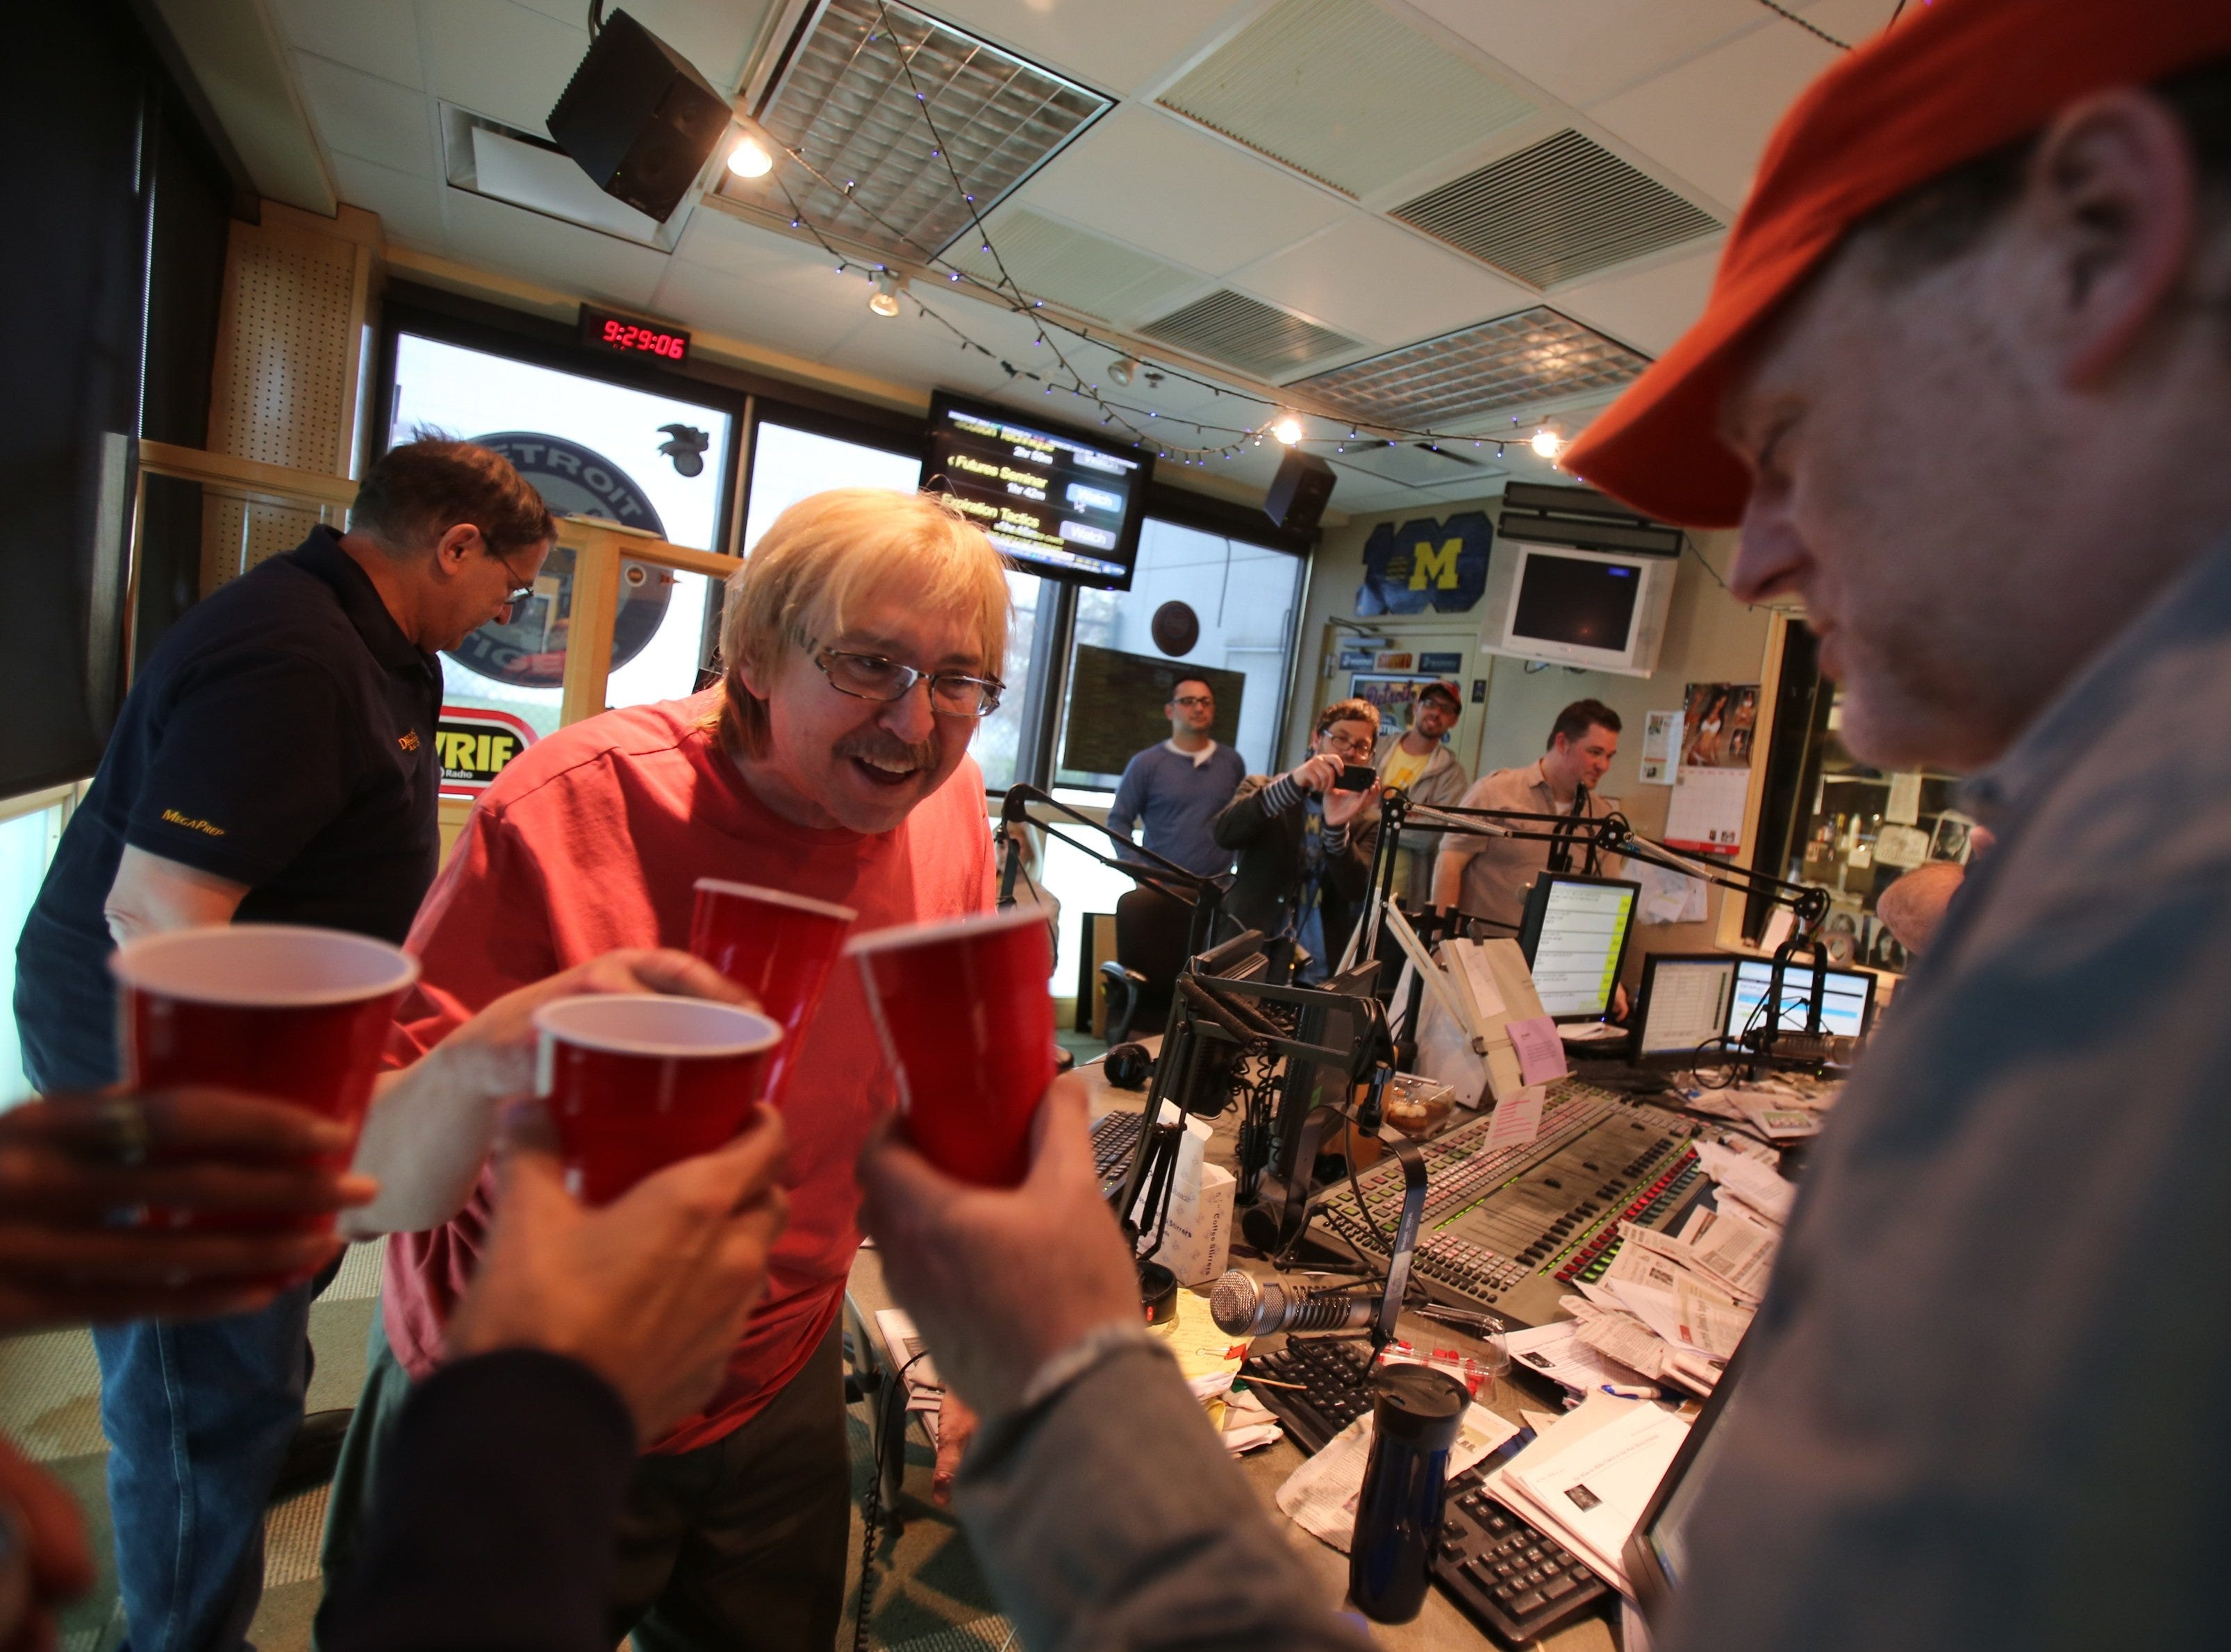 Mike Clark, left and Drew Lane of the Drew and Lane show toast a shot during a break on their last show on WRIF-FM, Friday May 17, 2013 in Ferndale.